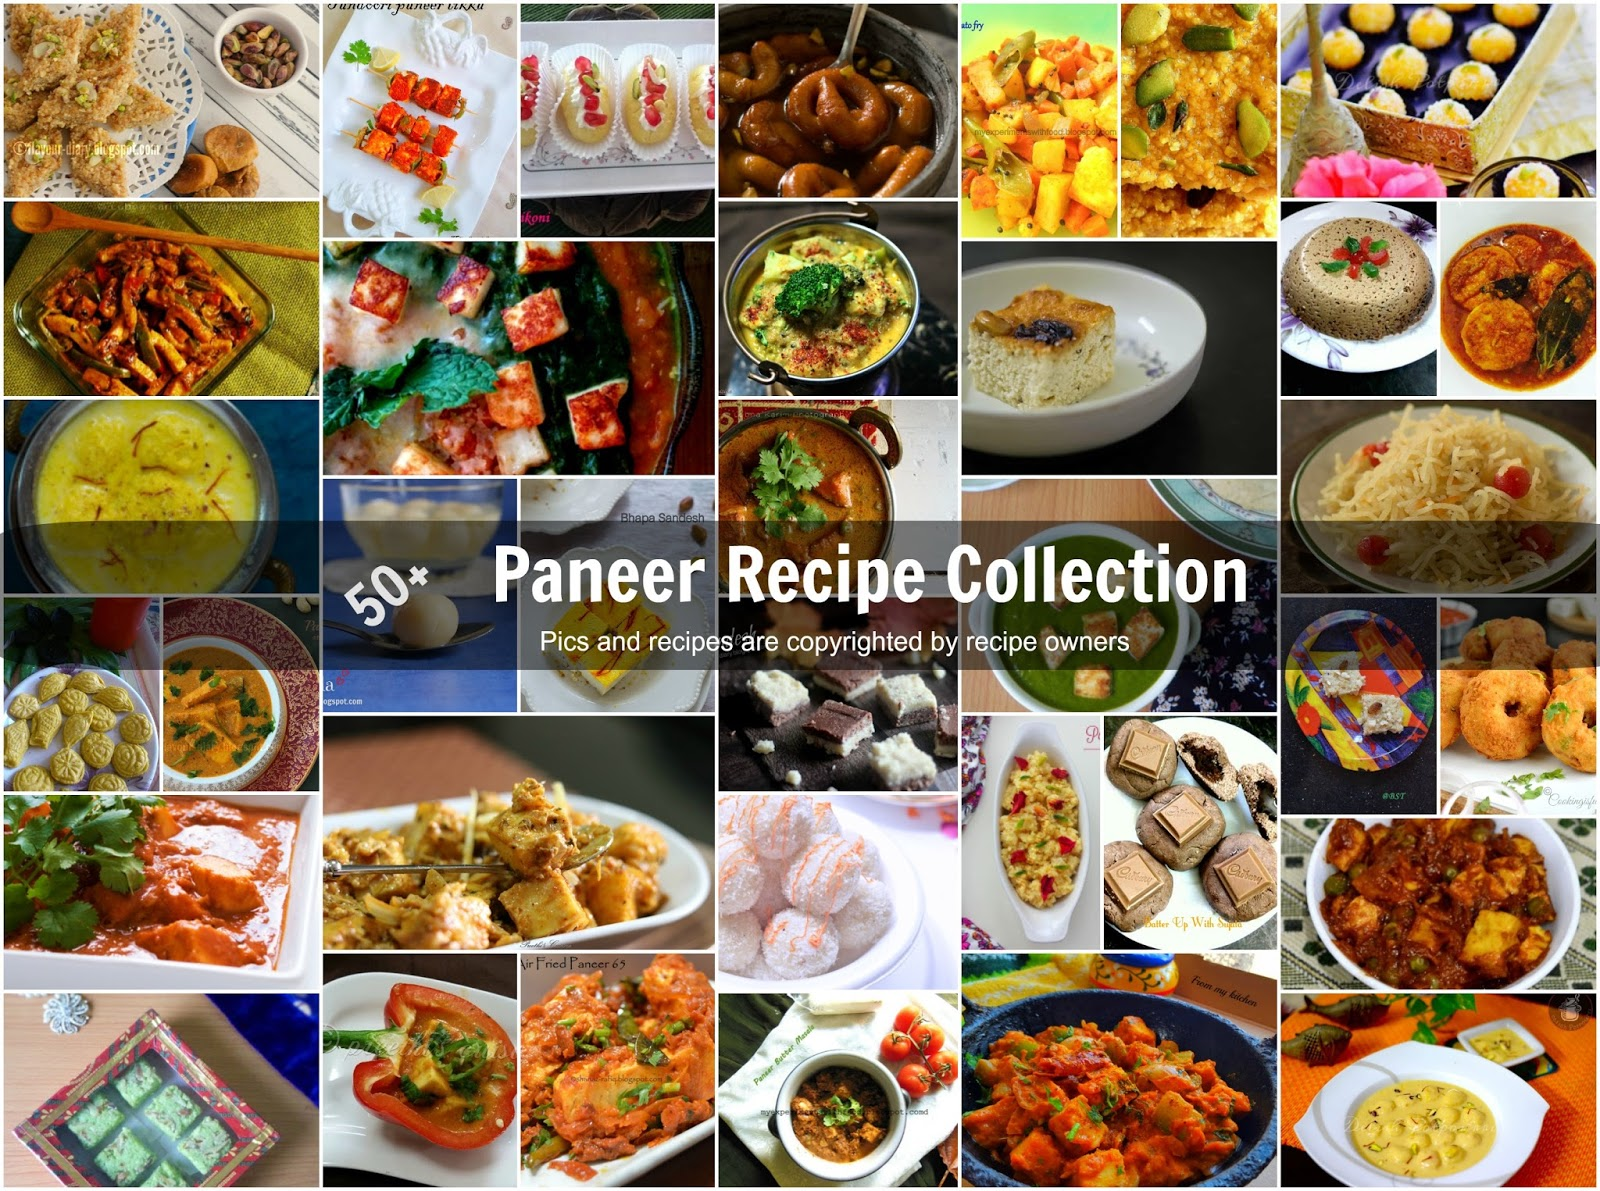 Indian food recipes indian recipes desi food desi recipes paneer recipes starter curries and dessert recipes indian vegetarian recipes forumfinder Choice Image